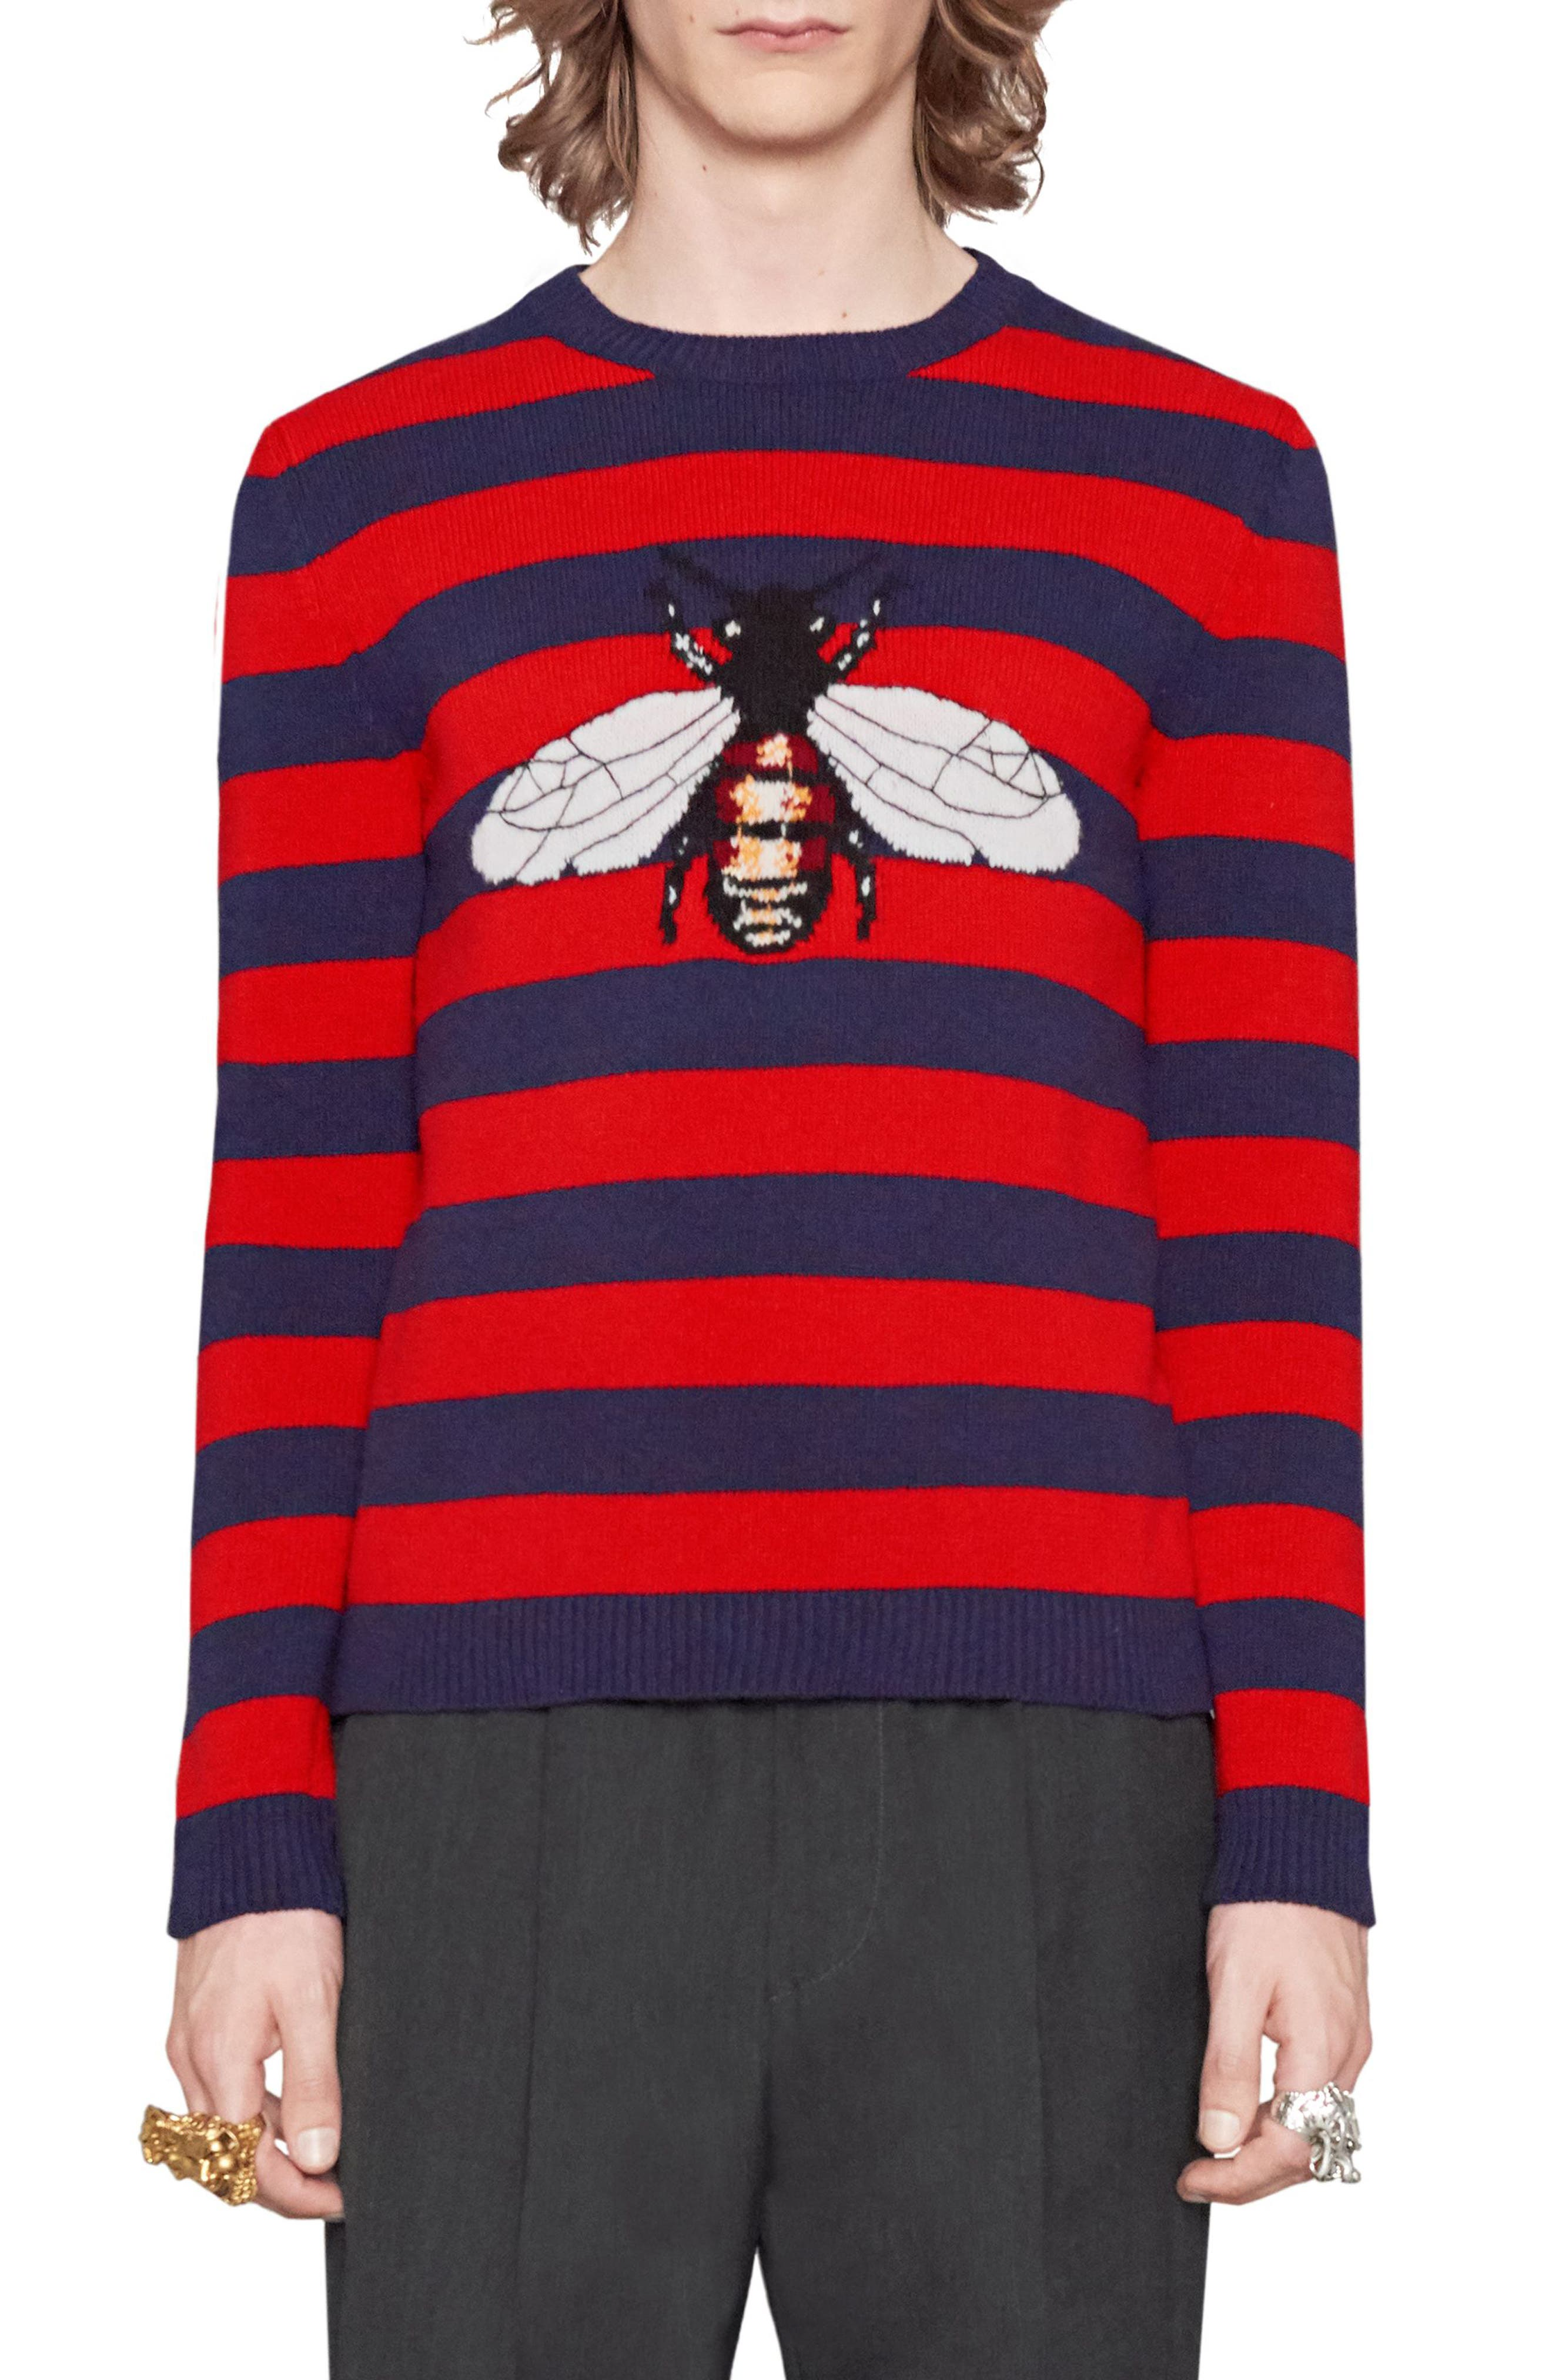 Stripe Bee Wool Crewneck Sweater,                             Main thumbnail 1, color,                             Red